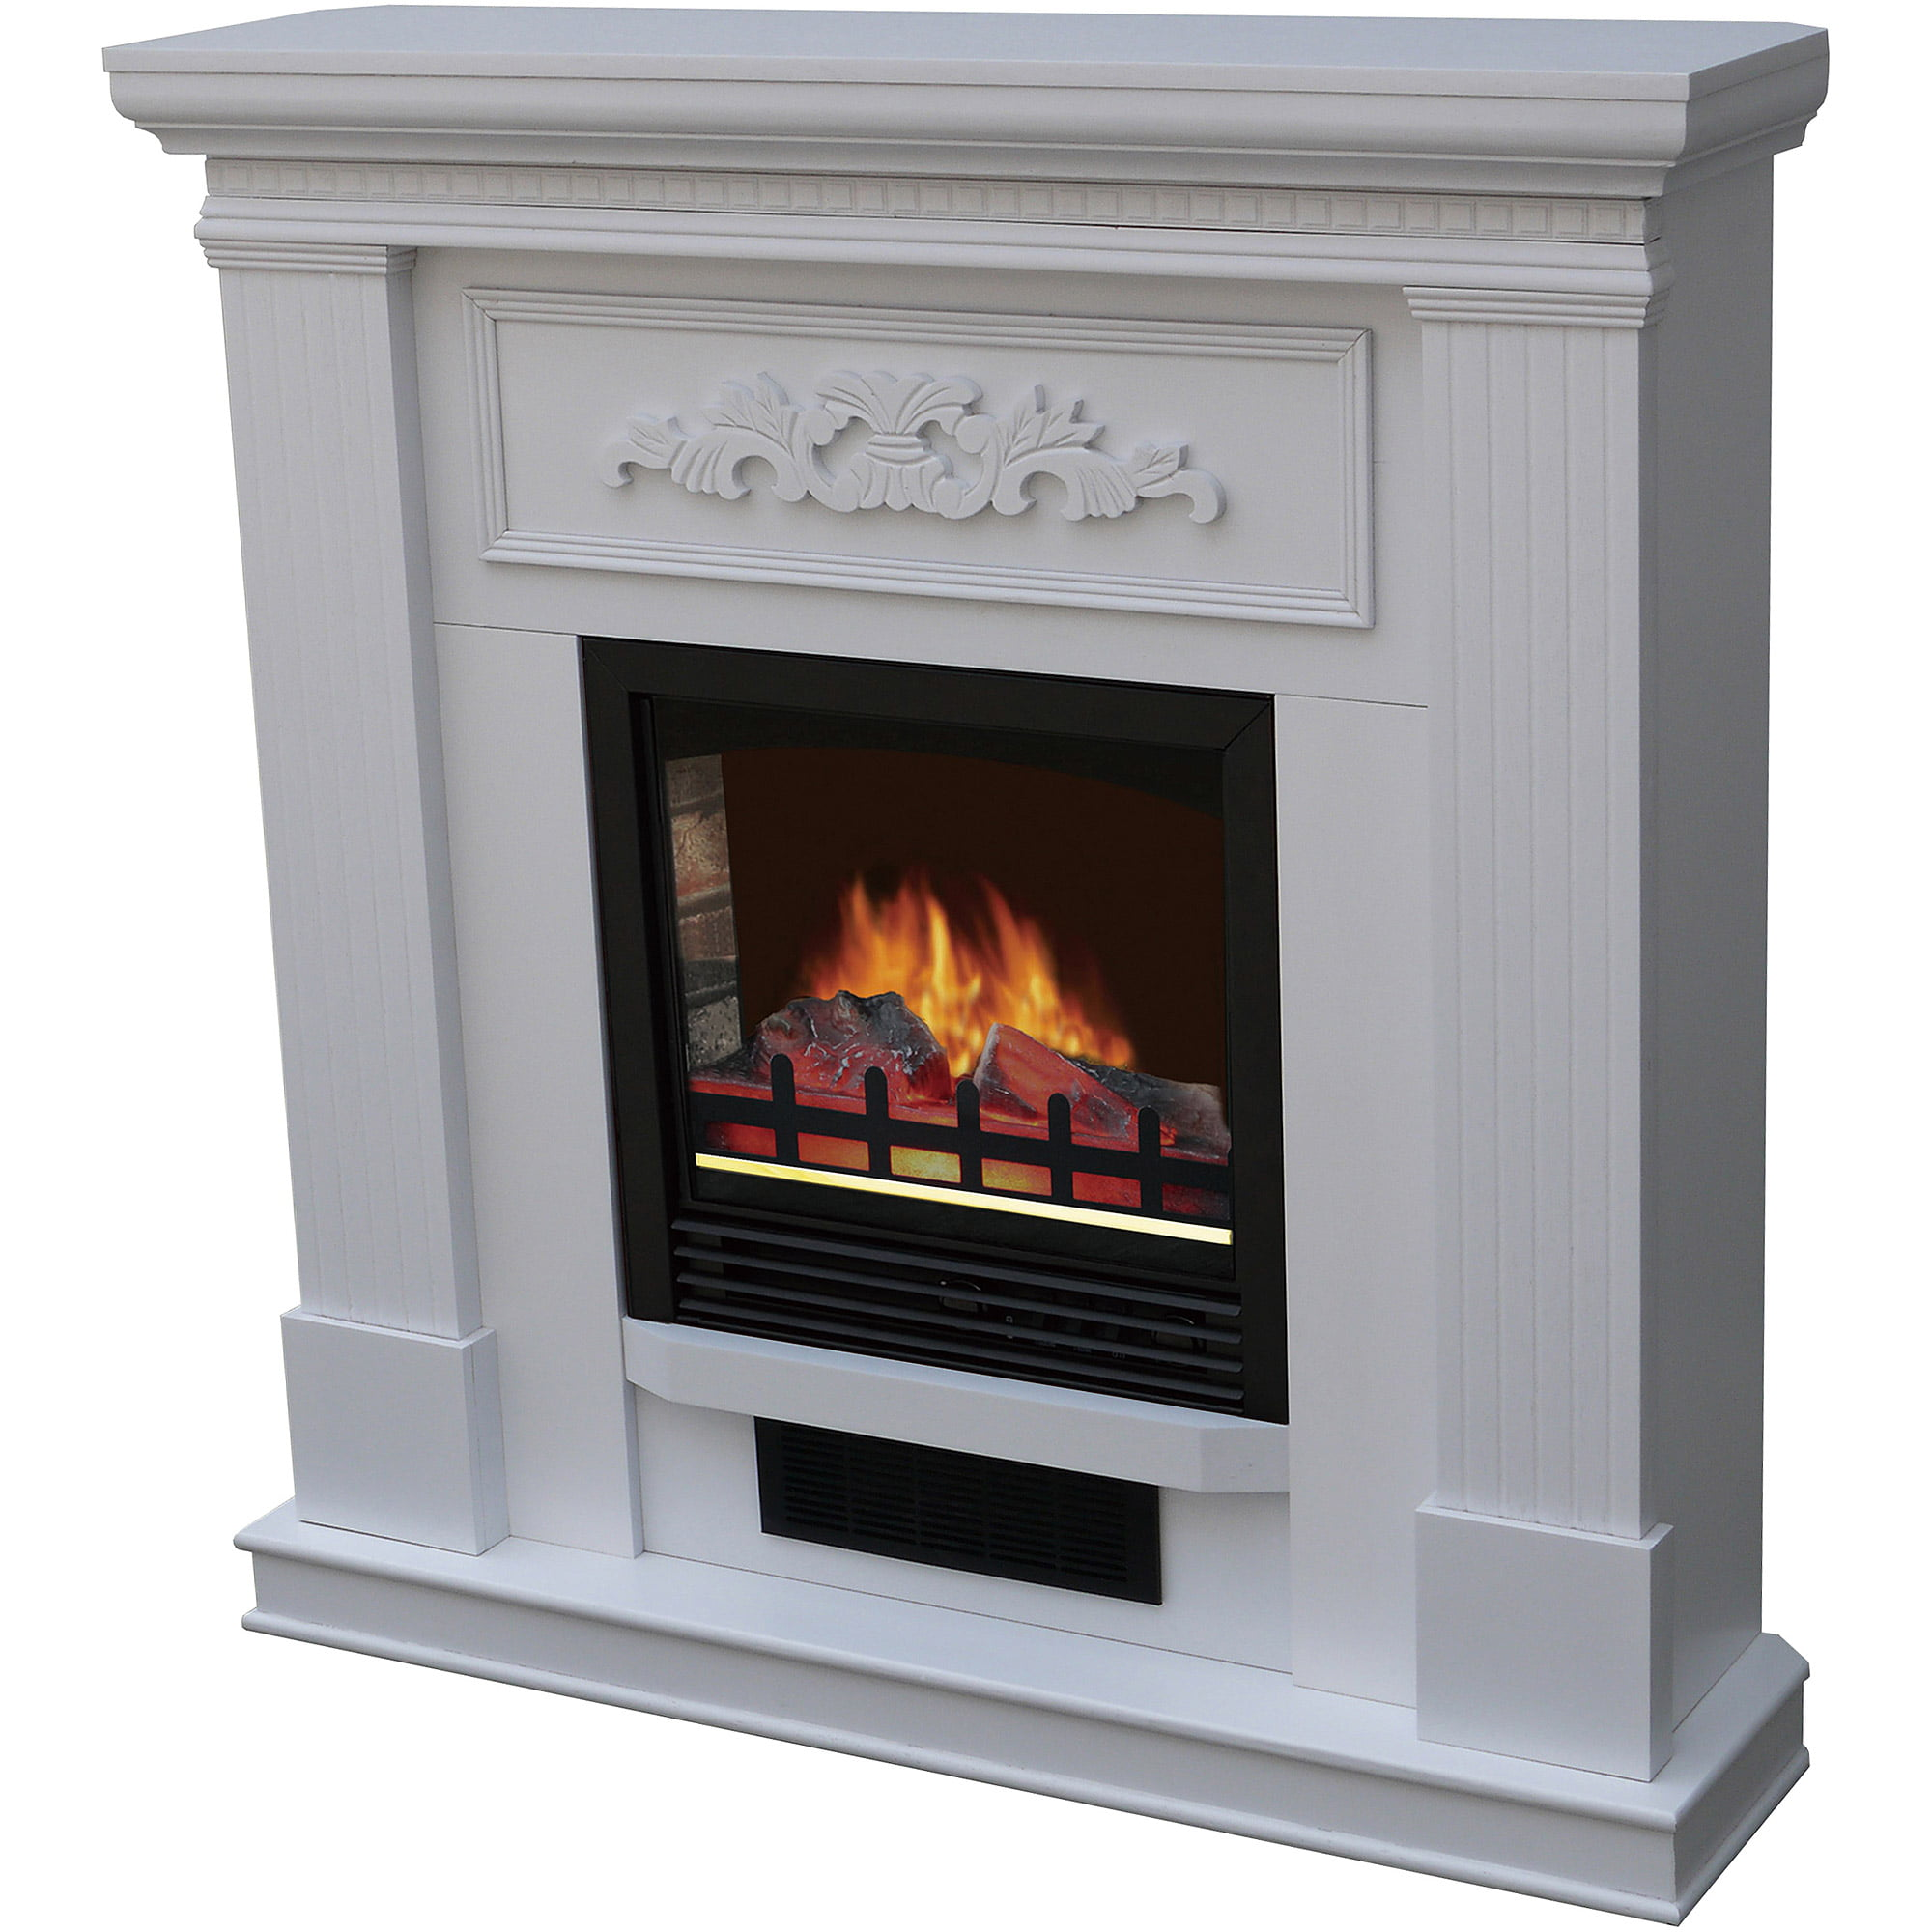 "Electric Fireplace with 38"" Mantle, White by Electric Fireplaces"